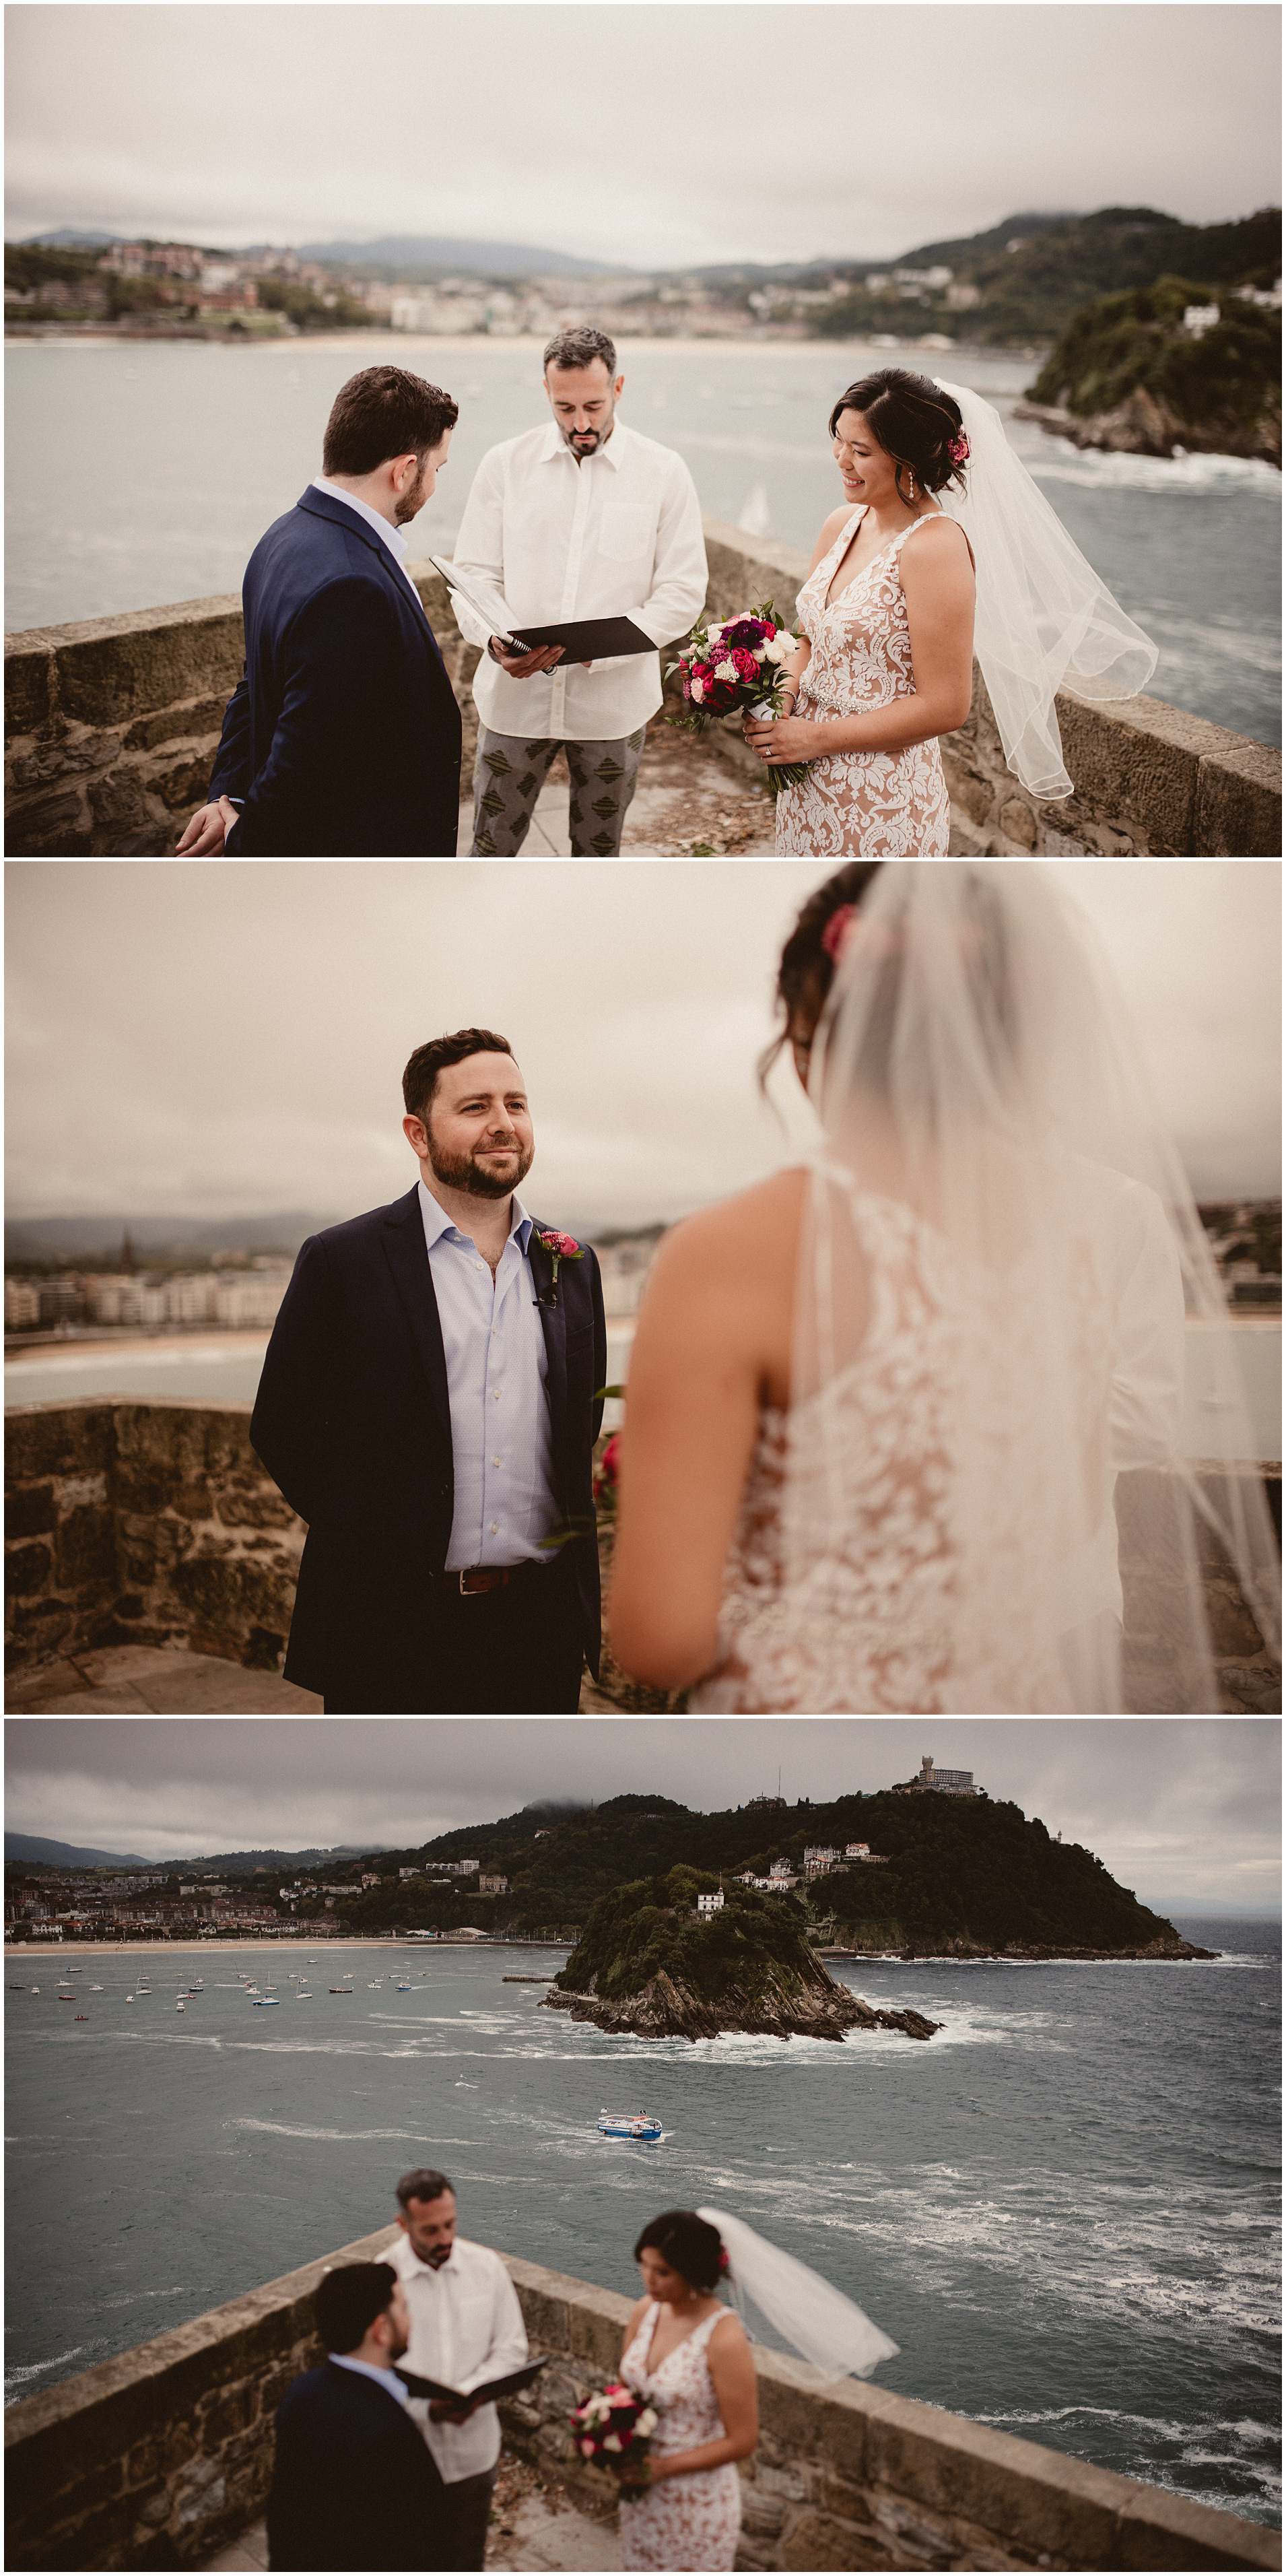 Brian & Julia - Destination wedding in San Sebastián  - Elopement in San Sebastian- ARTEFOTO27.jpg